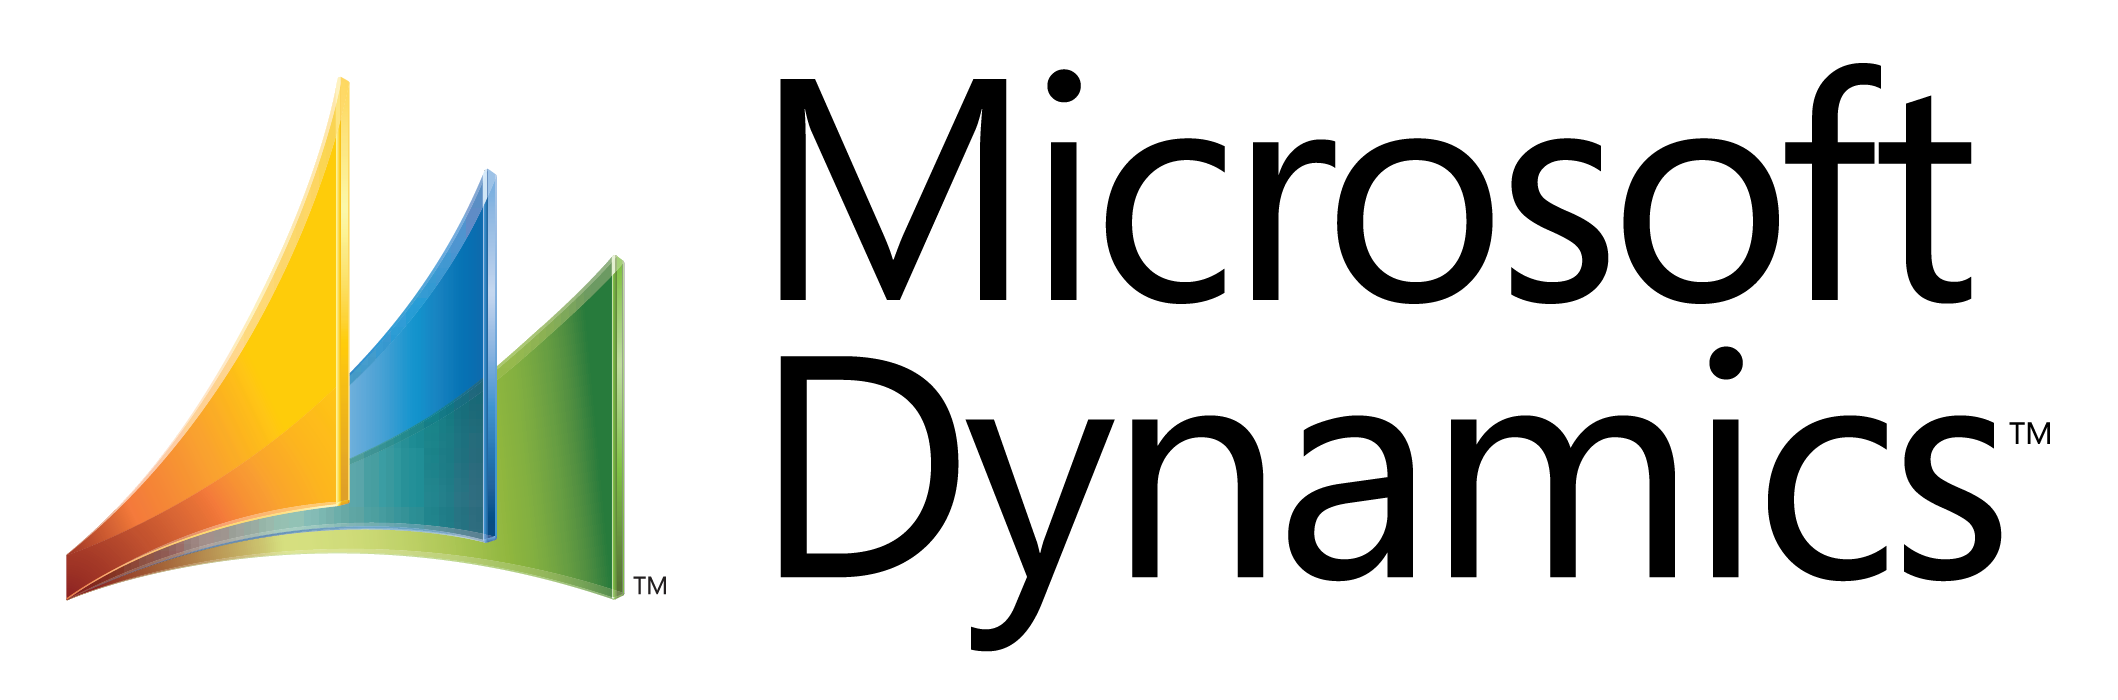 MS-Dynamics-Logo-Transparent